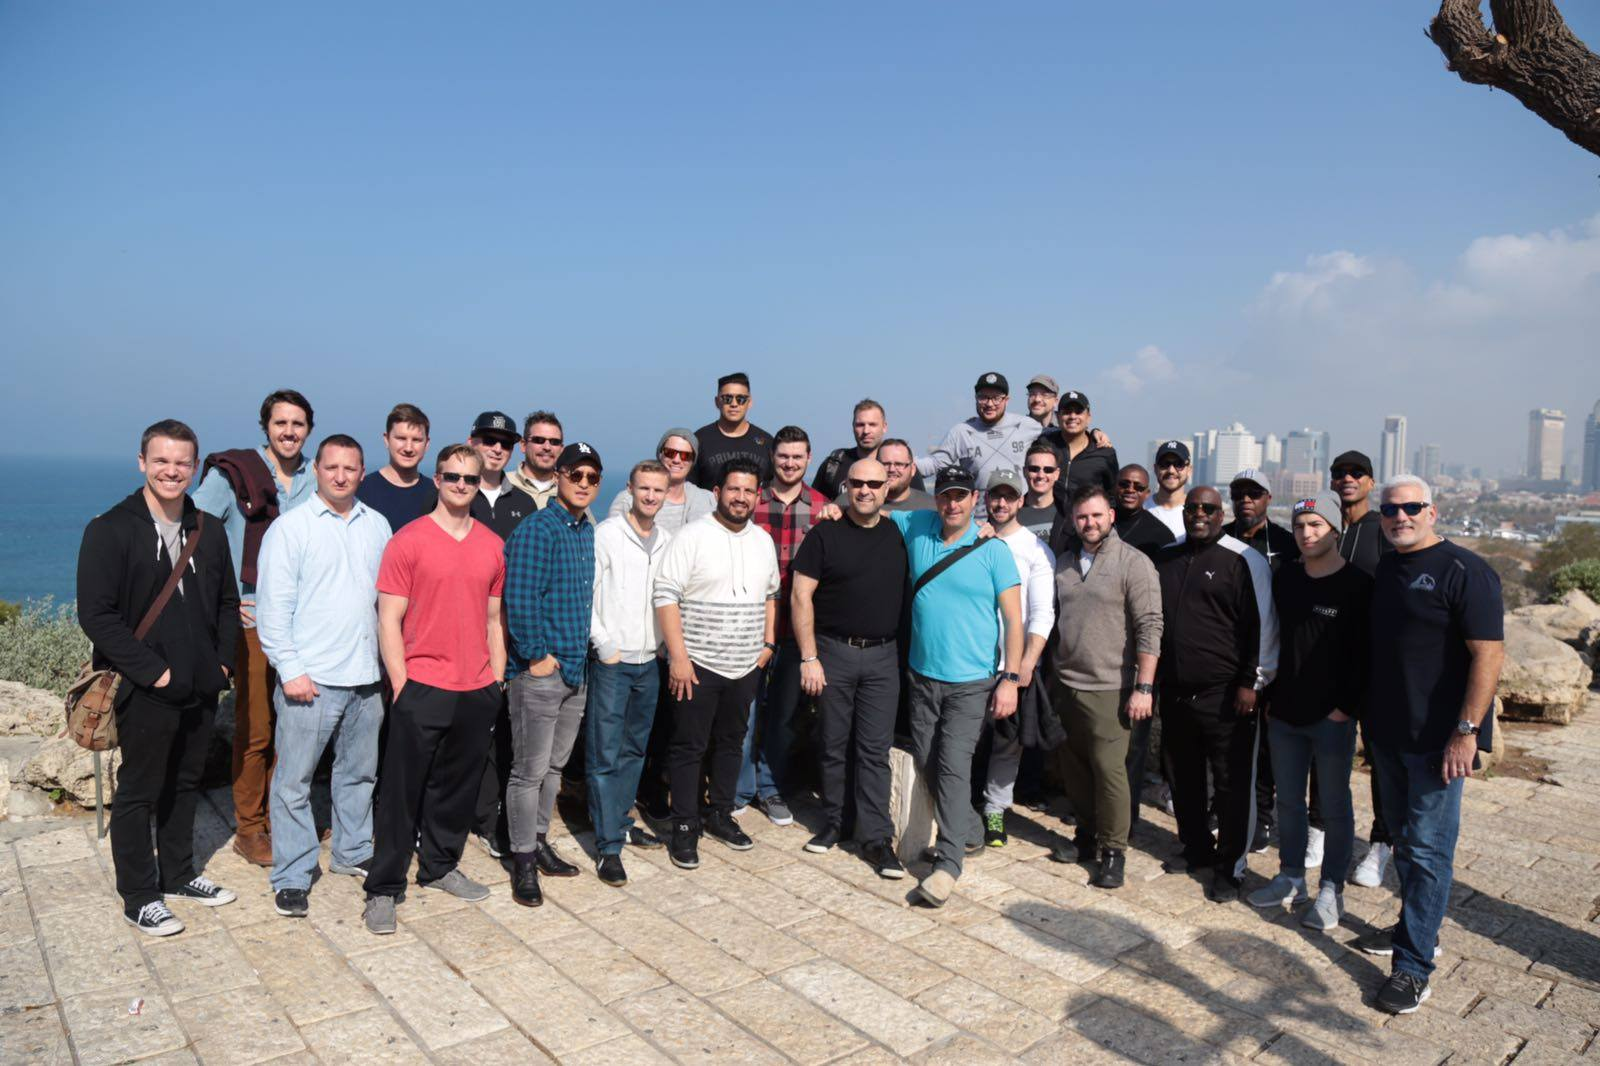 The group overlooking Tel Aviv and the port of Jaffa.  #visitisrael